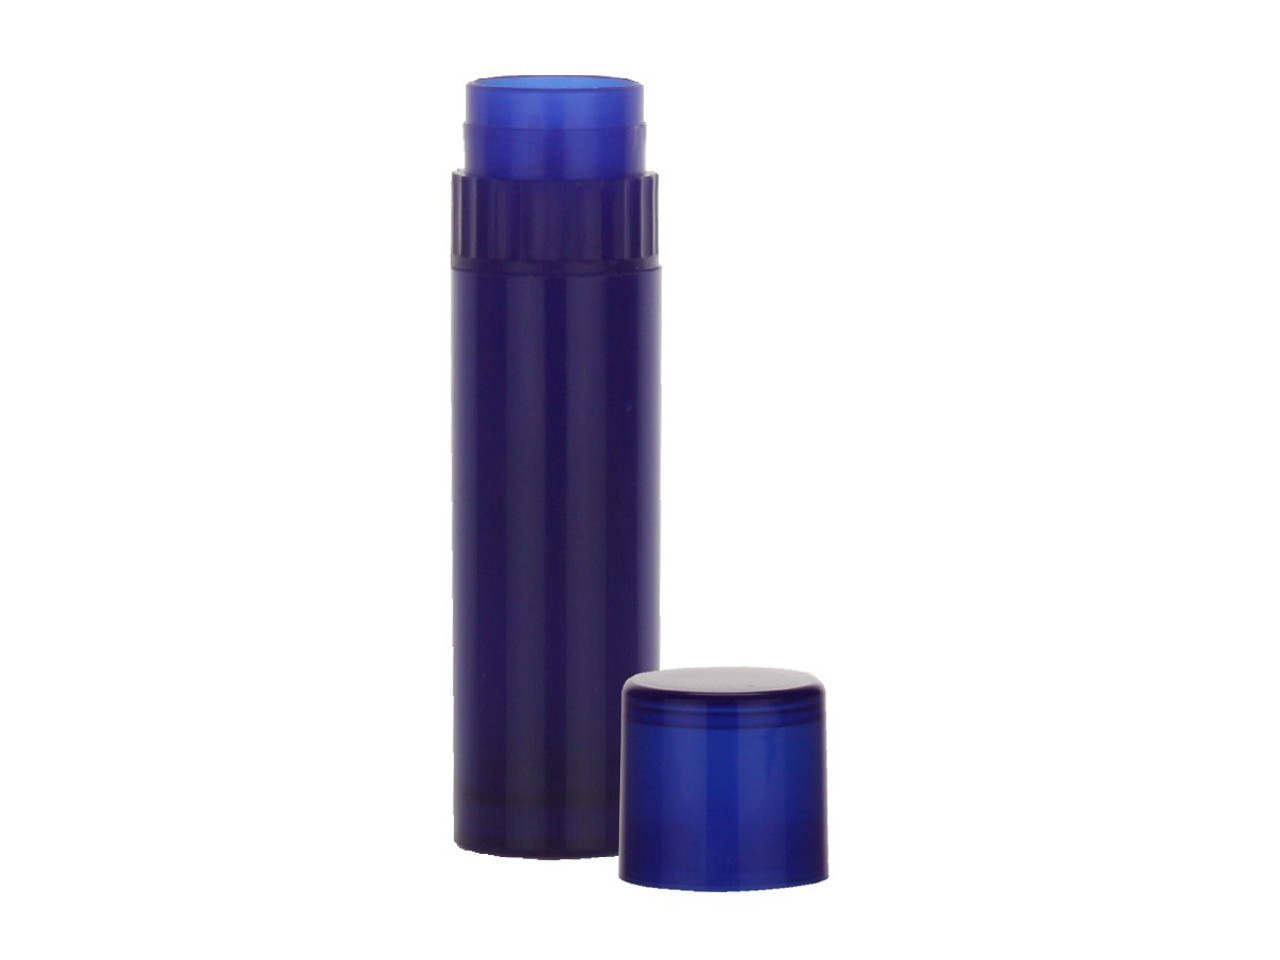 Royal Blue Lip Balm Tubes has collar turn mechanism at the top and made with BPA free Polypropylene.